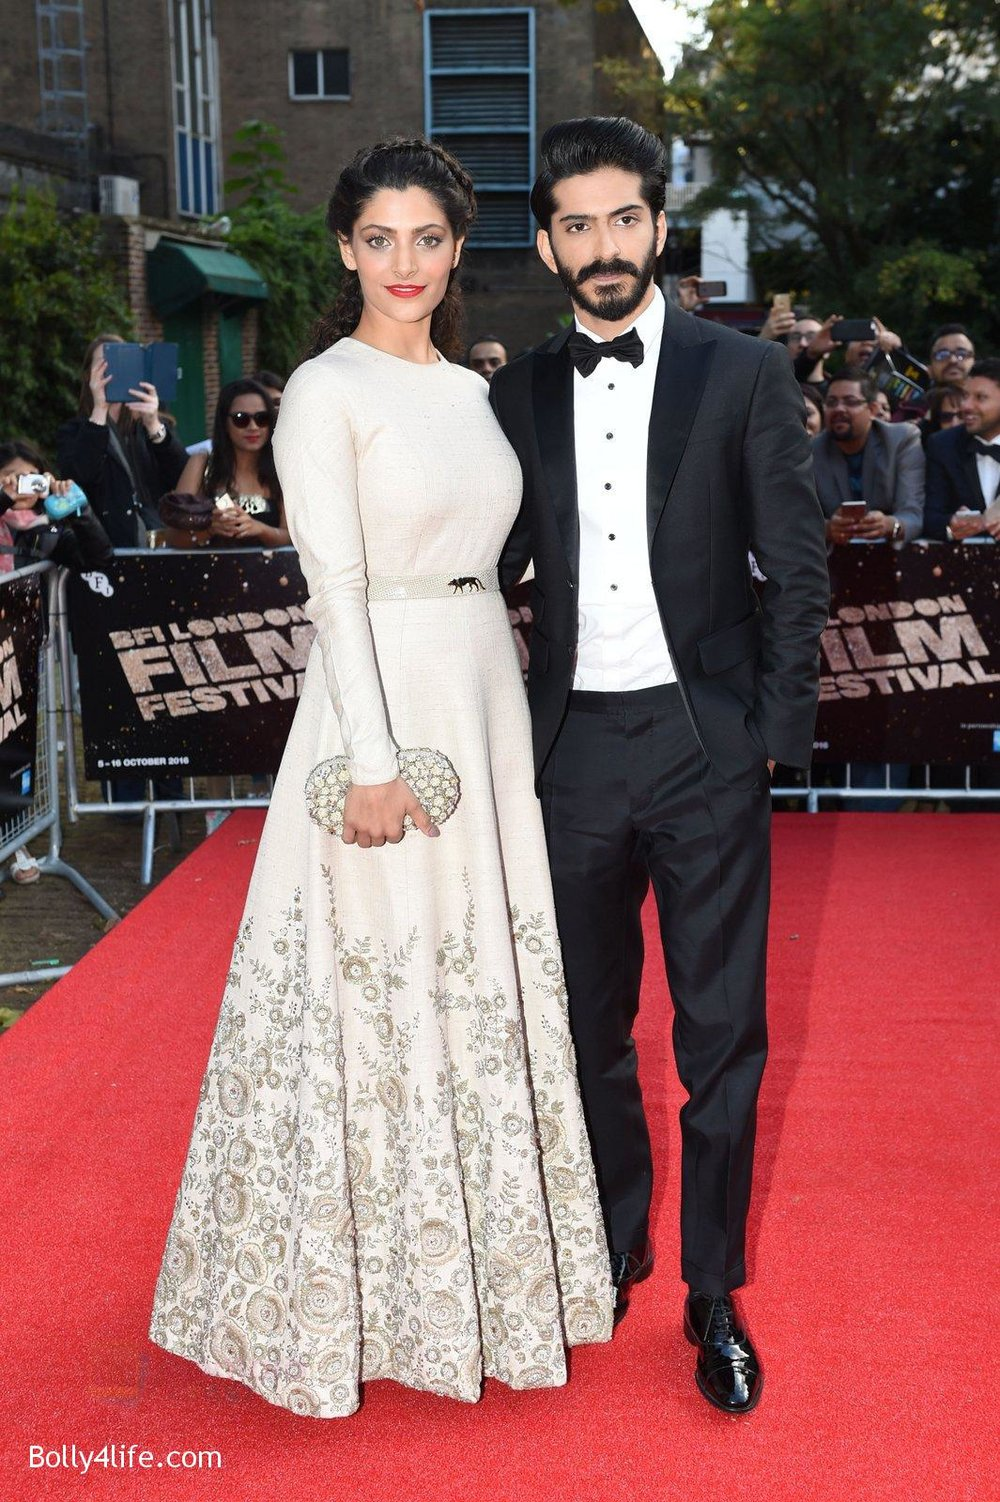 Harshvardhan-Kapoor-Saiyami-Kher-at-Mirzya-premiere-in-BFI-London-Film-festival-on-10th-Oct-2016-54.jpg